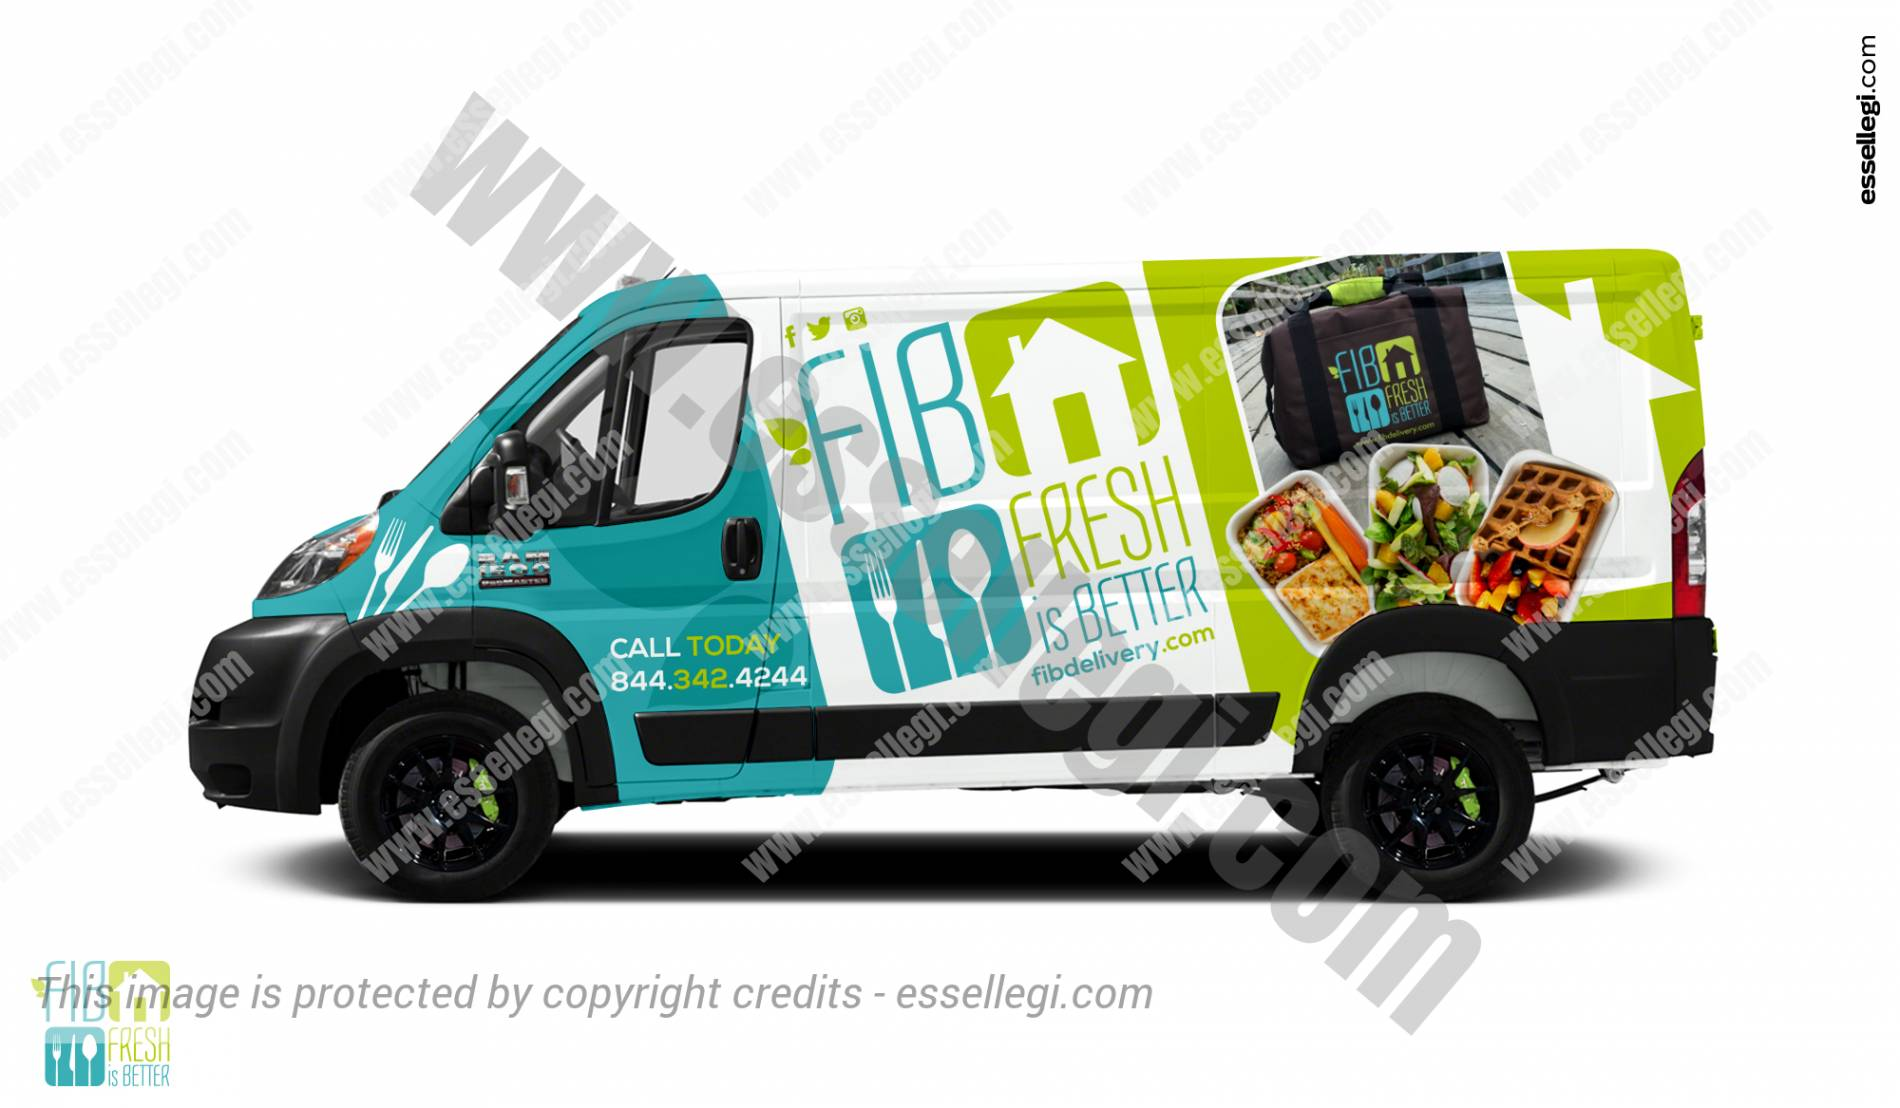 Dodge Ram Promaster >> Dodge RAM ProMaster Wrap Design for Food Delivery Van by Essellegi